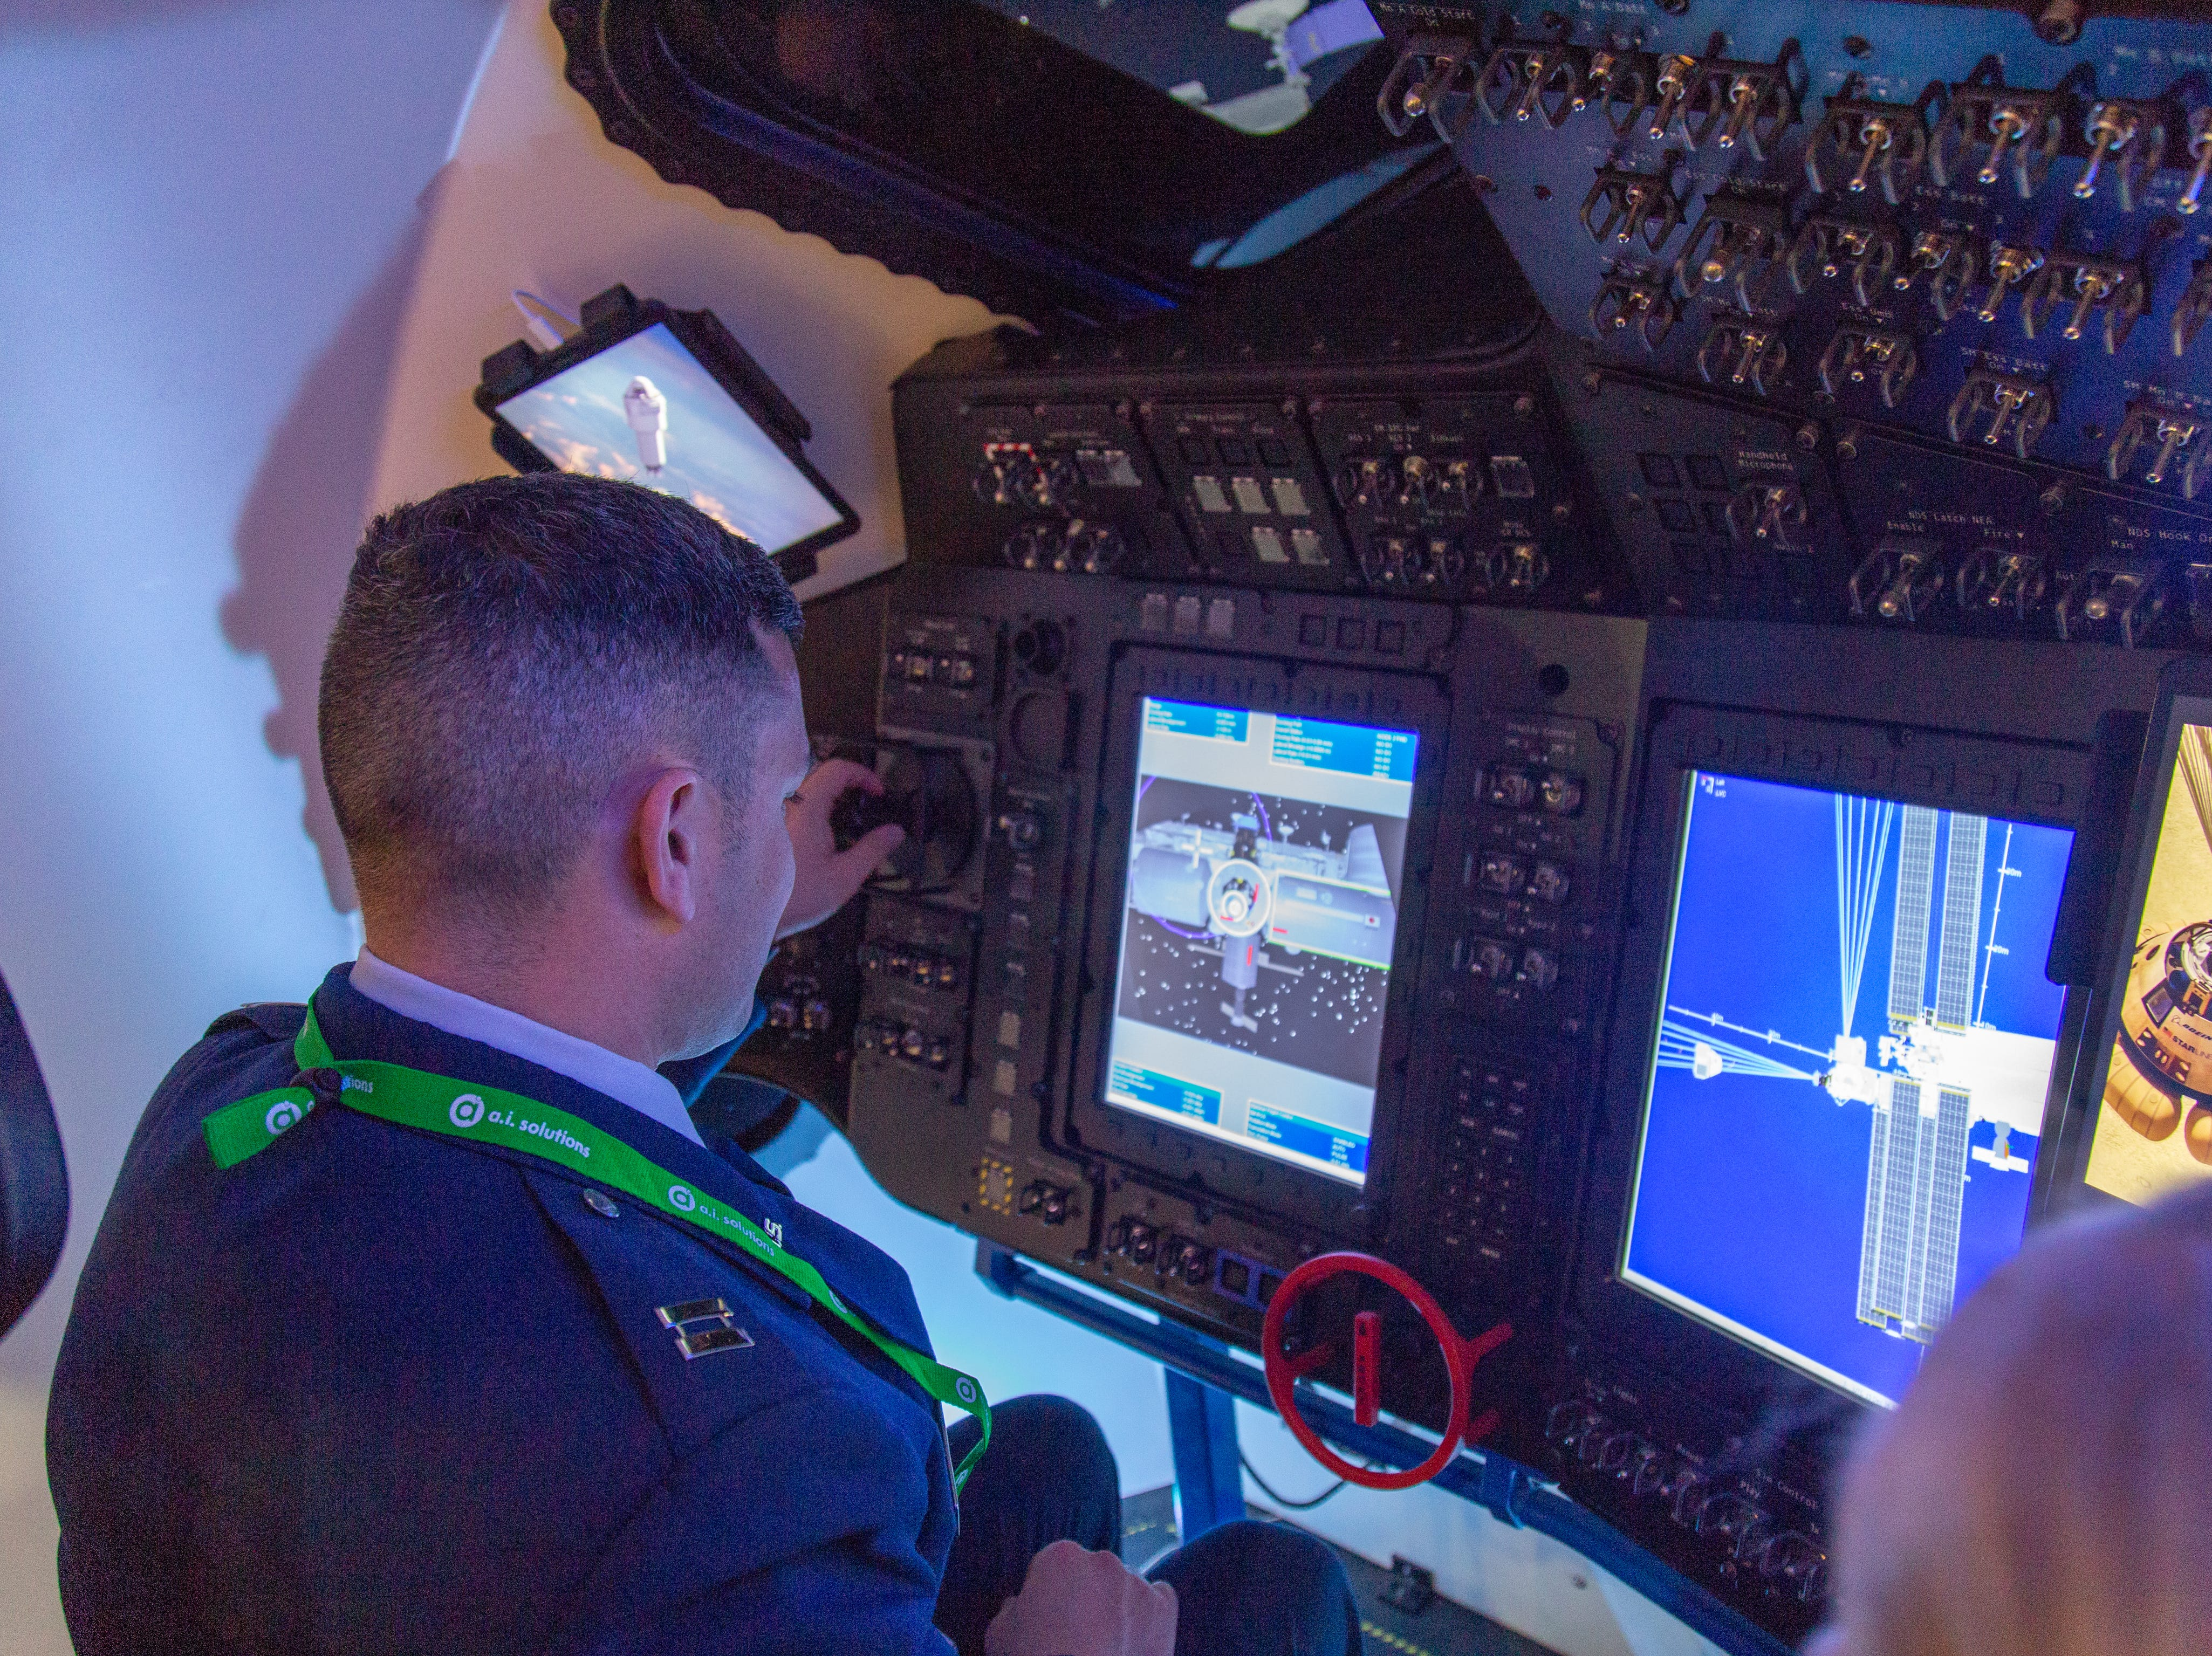 An Air Force captain uses the Starliner simulator in Boeing's exhibit during the 35th Space Symposium in Colorado Springs on Monday, April 8, 2019.